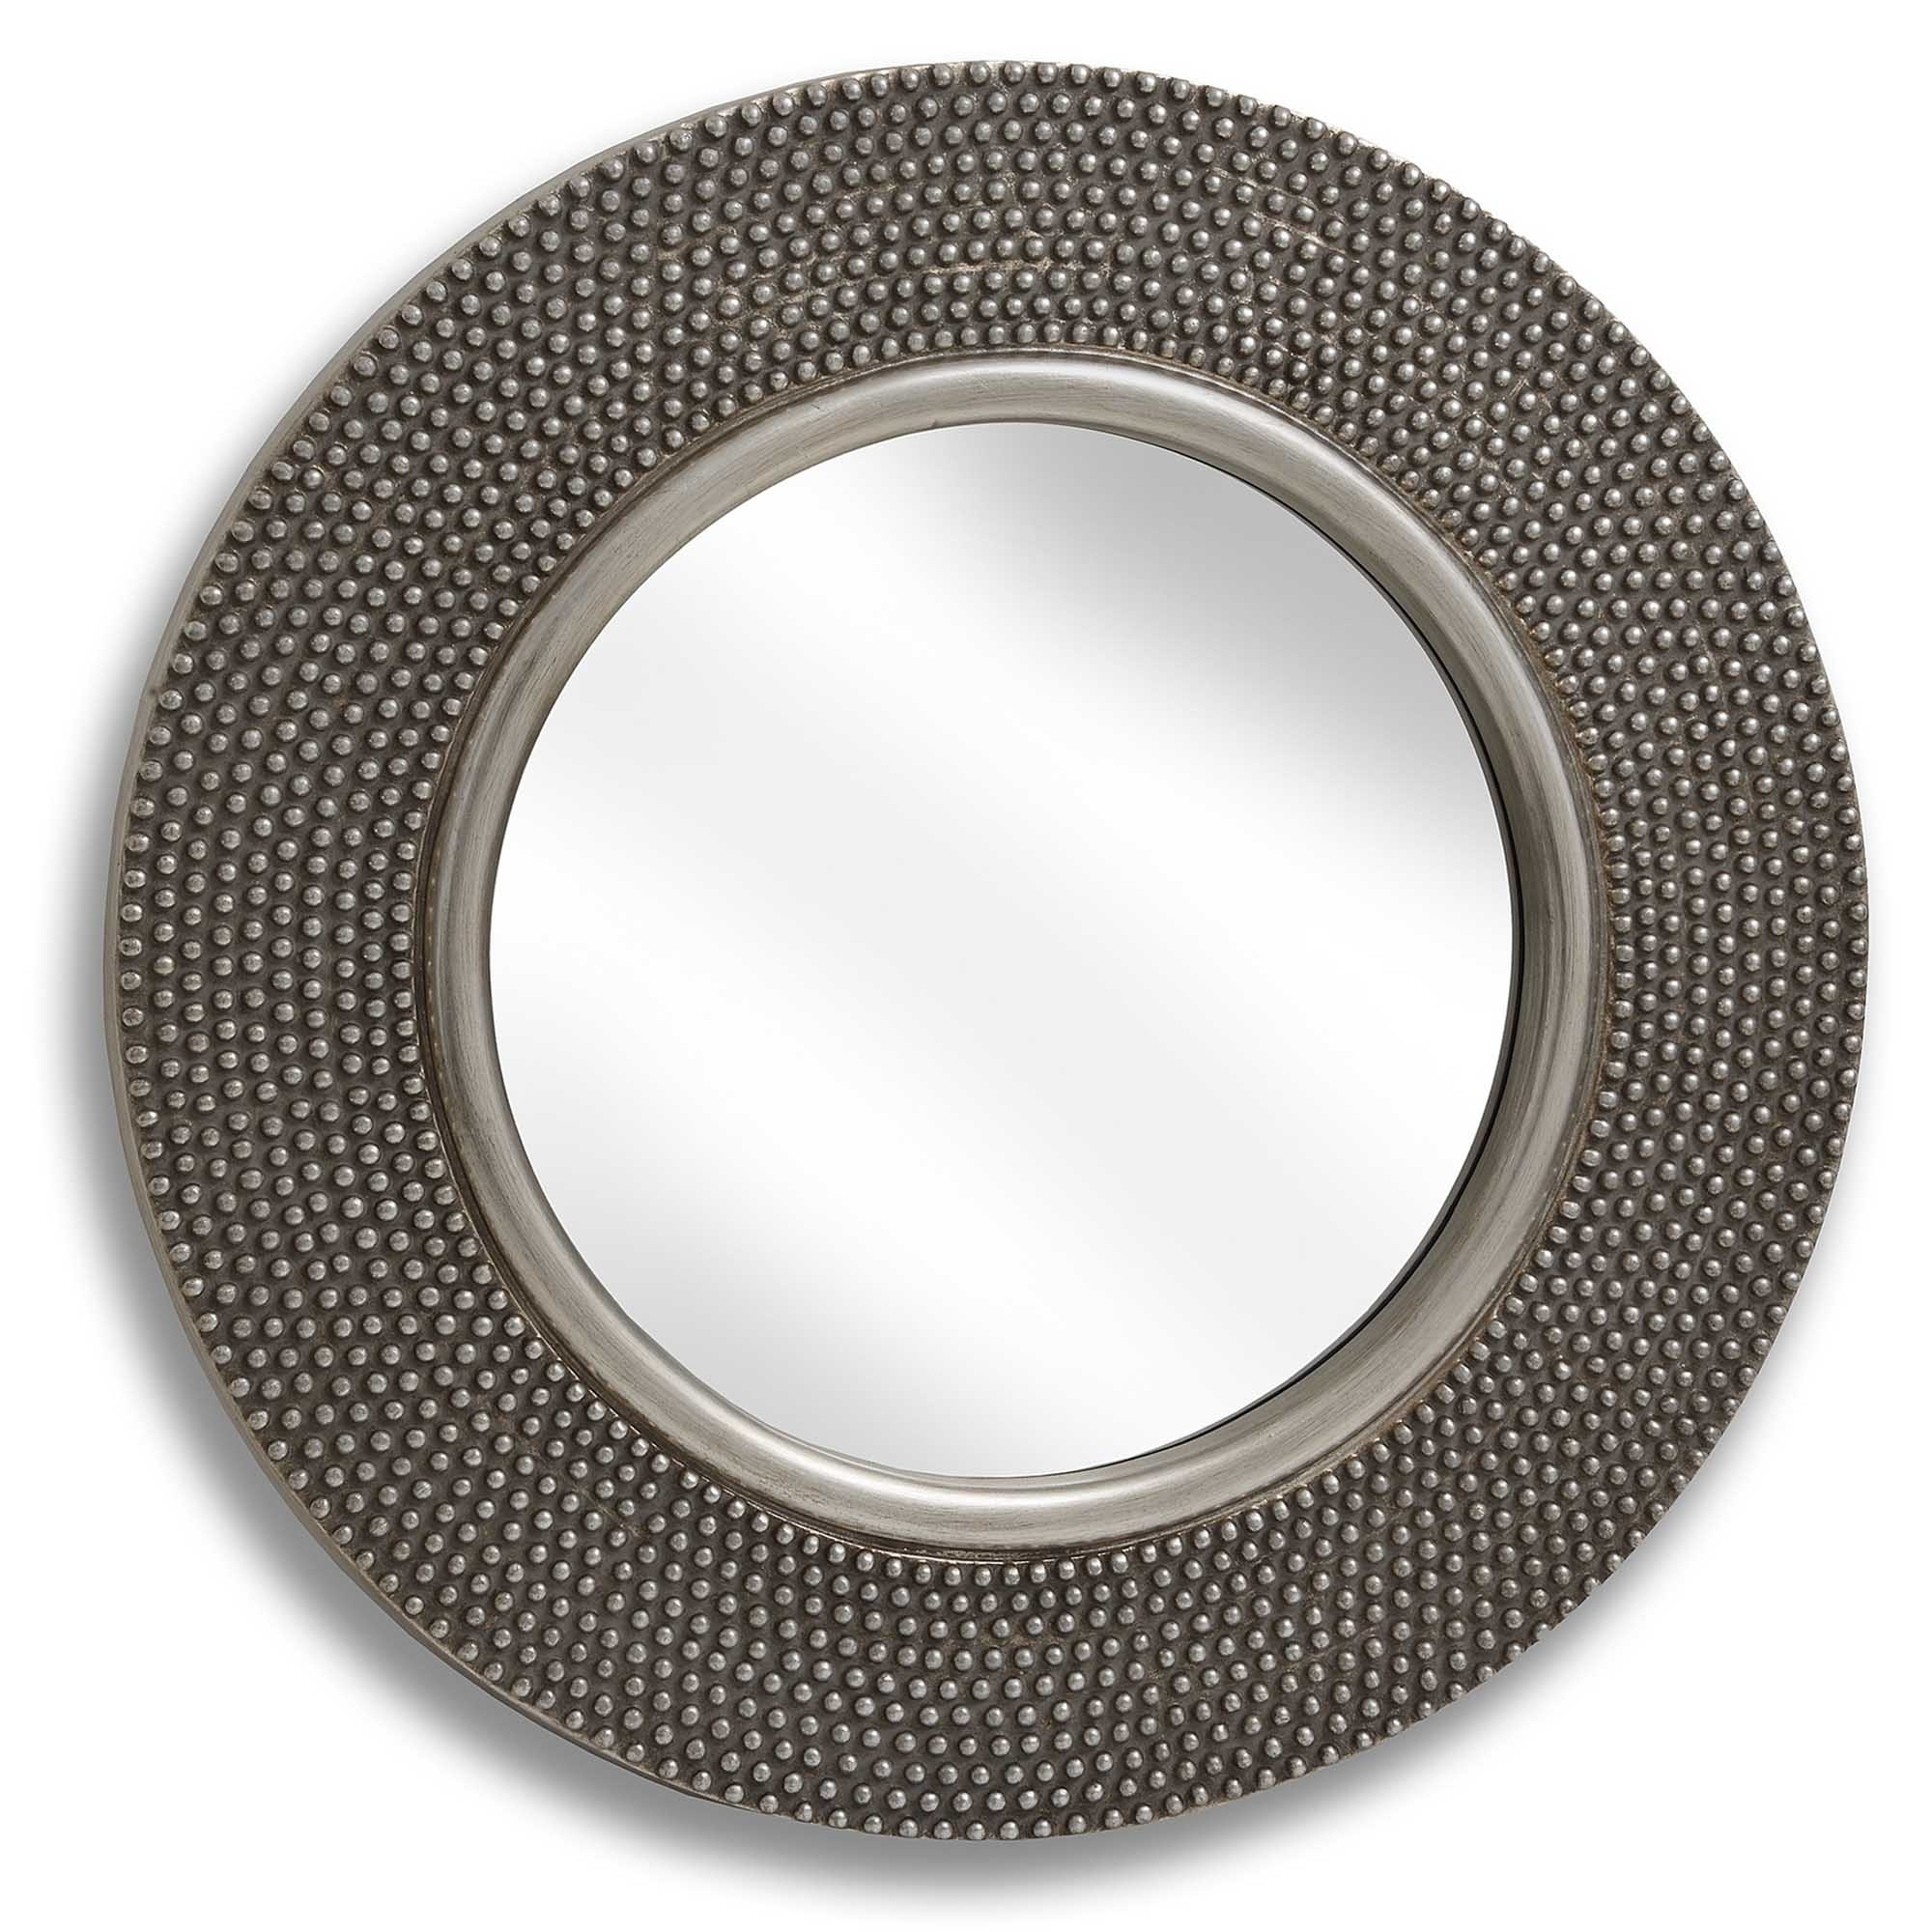 Large Round Beaded Wall Mirror Regarding Recent Beaded Wall Mirrors (Gallery 14 of 20)